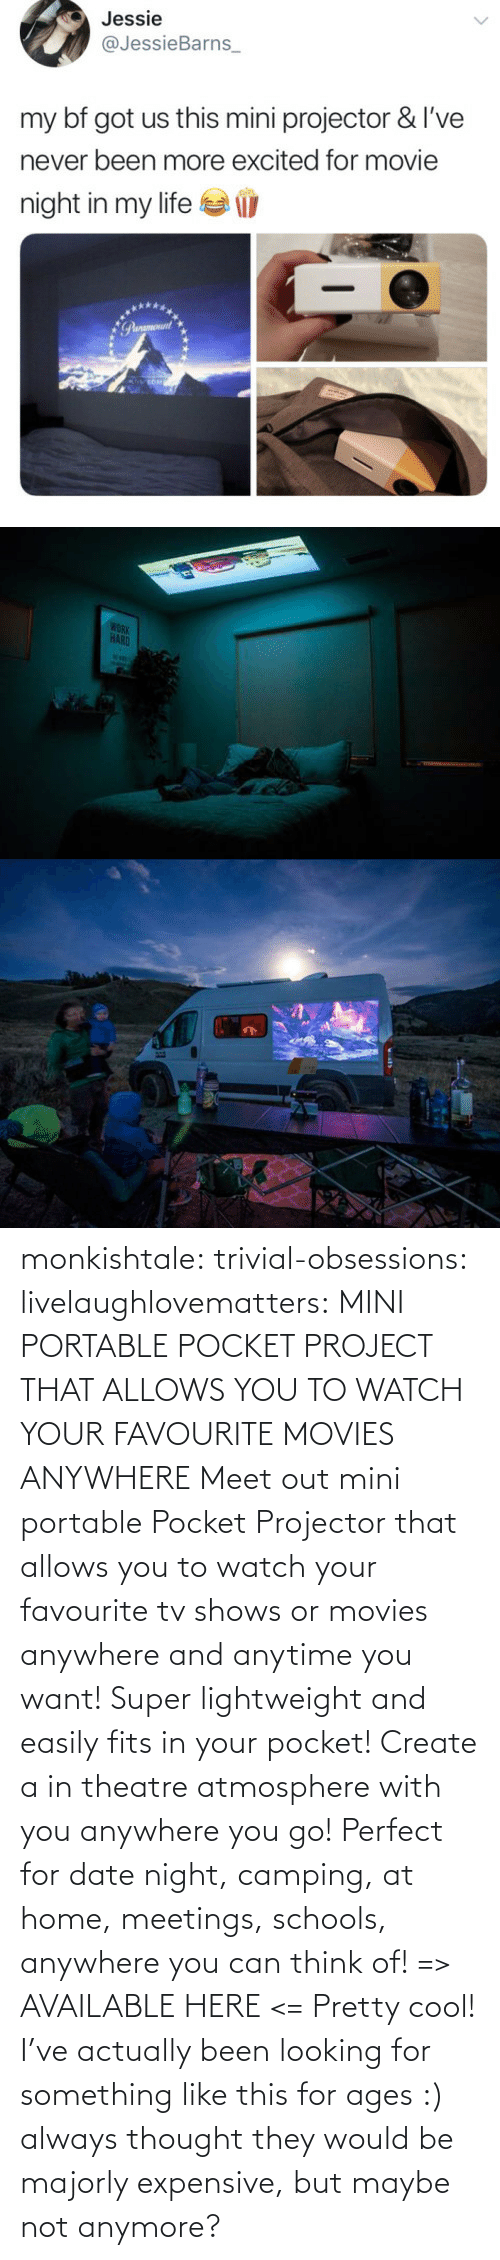 Thought: monkishtale: trivial-obsessions:   livelaughlovematters:   MINI PORTABLE POCKET PROJECT THAT ALLOWS YOU TO WATCH YOUR FAVOURITE MOVIES ANYWHERE Meet out mini portable Pocket Projector that allows you to watch your favourite tv shows or movies anywhere and anytime you want! Super lightweight and easily fits in your pocket! Create a in theatre atmosphere with you anywhere you go! Perfect for date night, camping, at home, meetings, schools, anywhere you can think of! => AVAILABLE HERE <=    Pretty cool!    I've actually been looking for something like this for ages :) always thought they would be majorly expensive, but maybe not anymore?